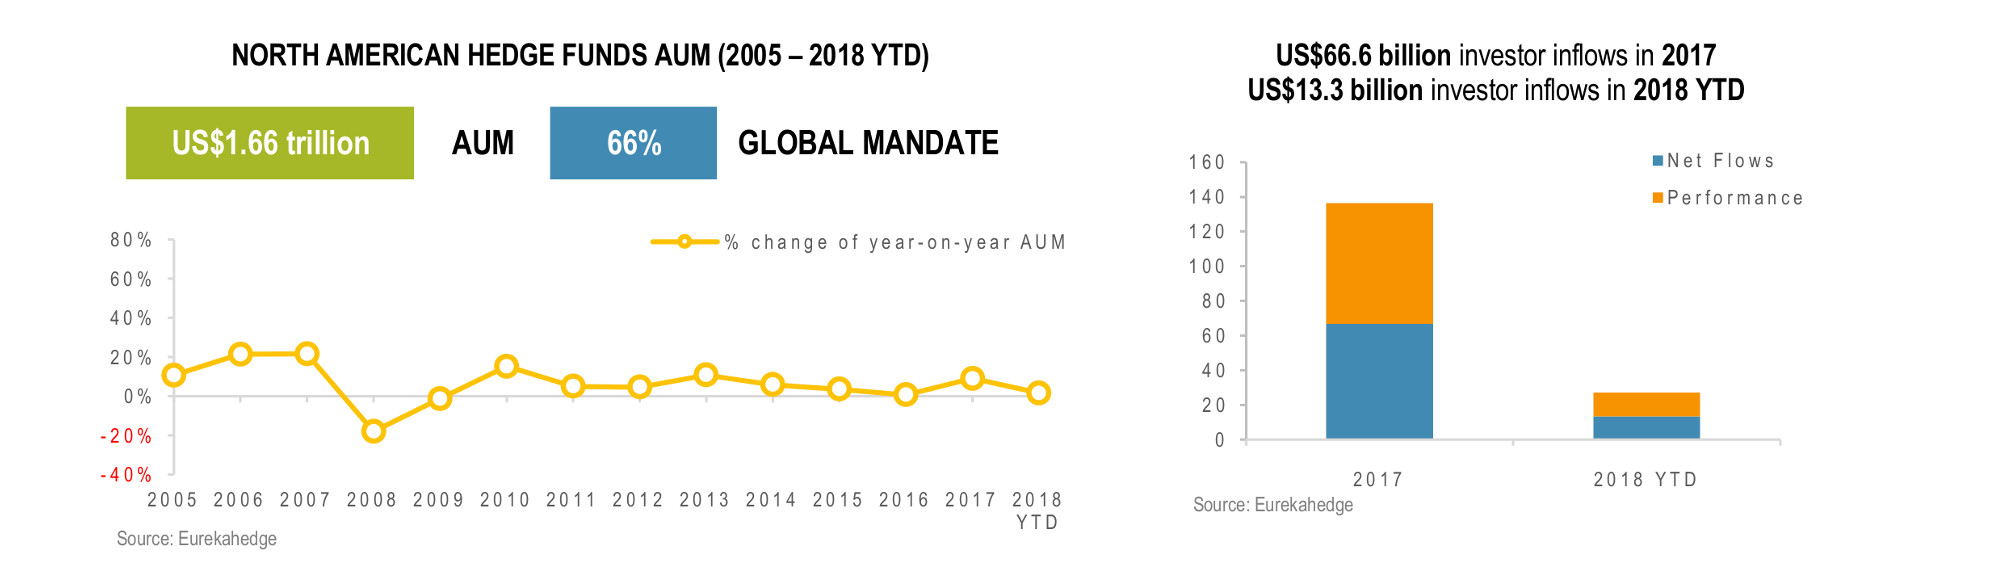 North American Hedge Funds Infographic March 2018 - AUM